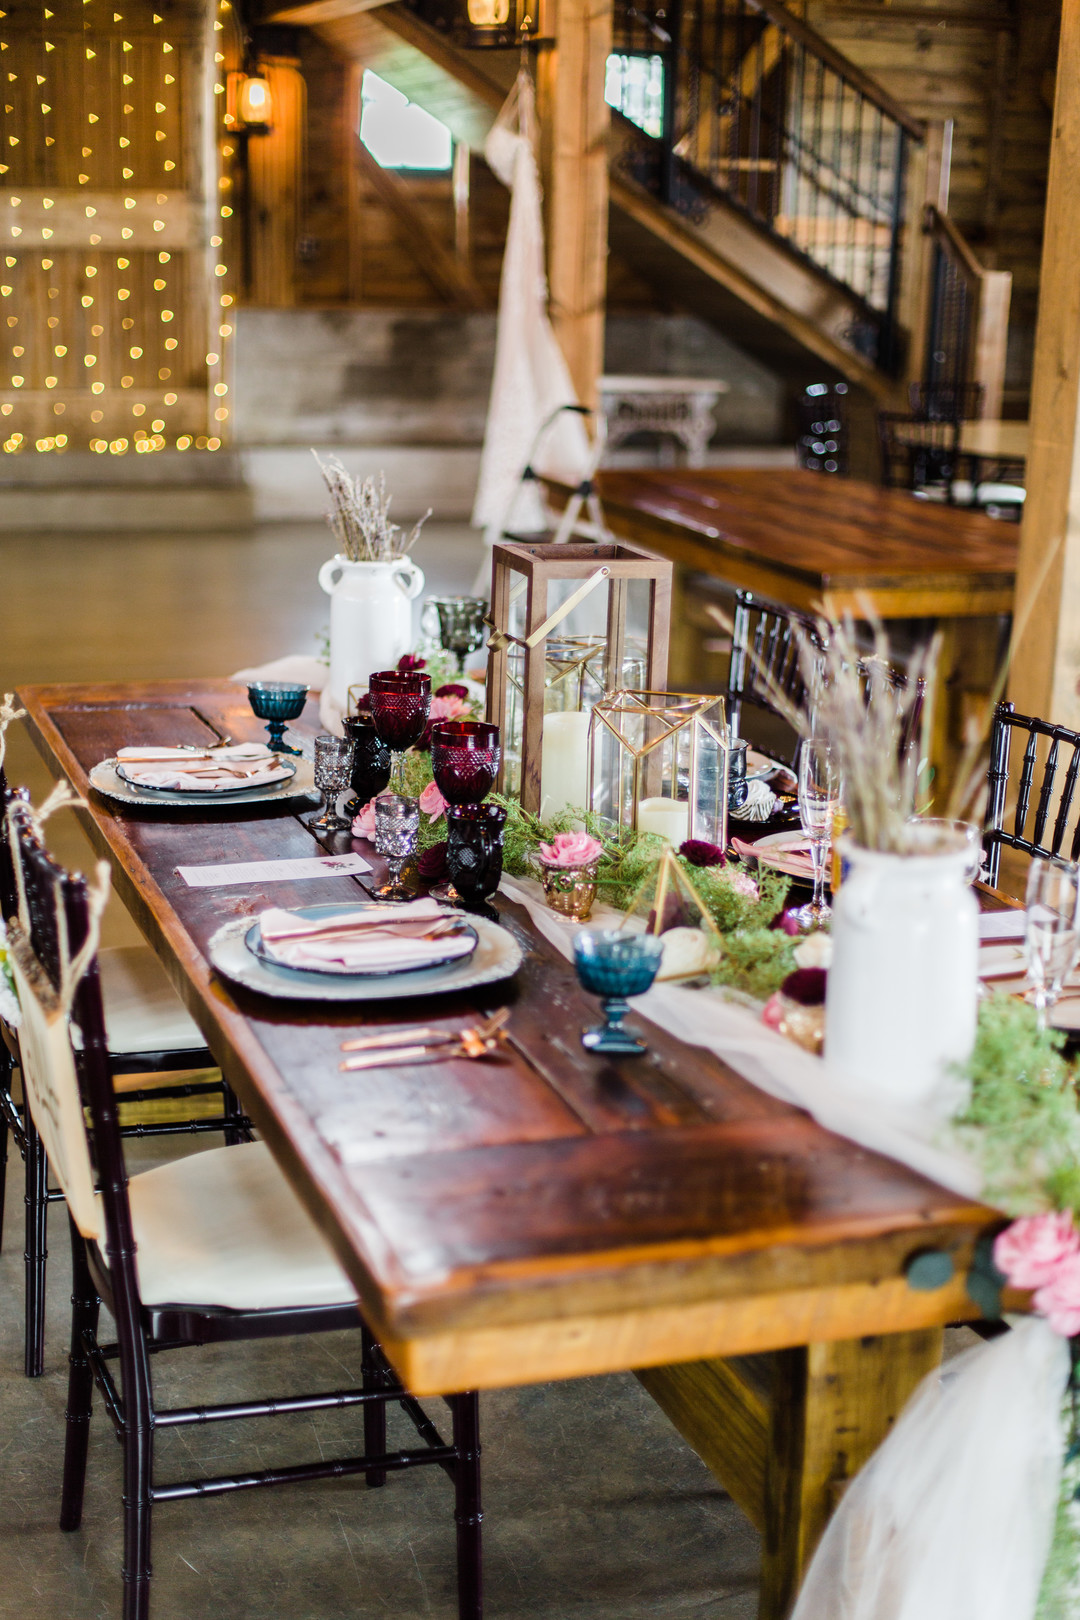 Rustic wedding centerpieces: Rustic barn wedding inspiration captured by Grace Rios Photography. See more fall wedding ideas at CHItheeWED.com!